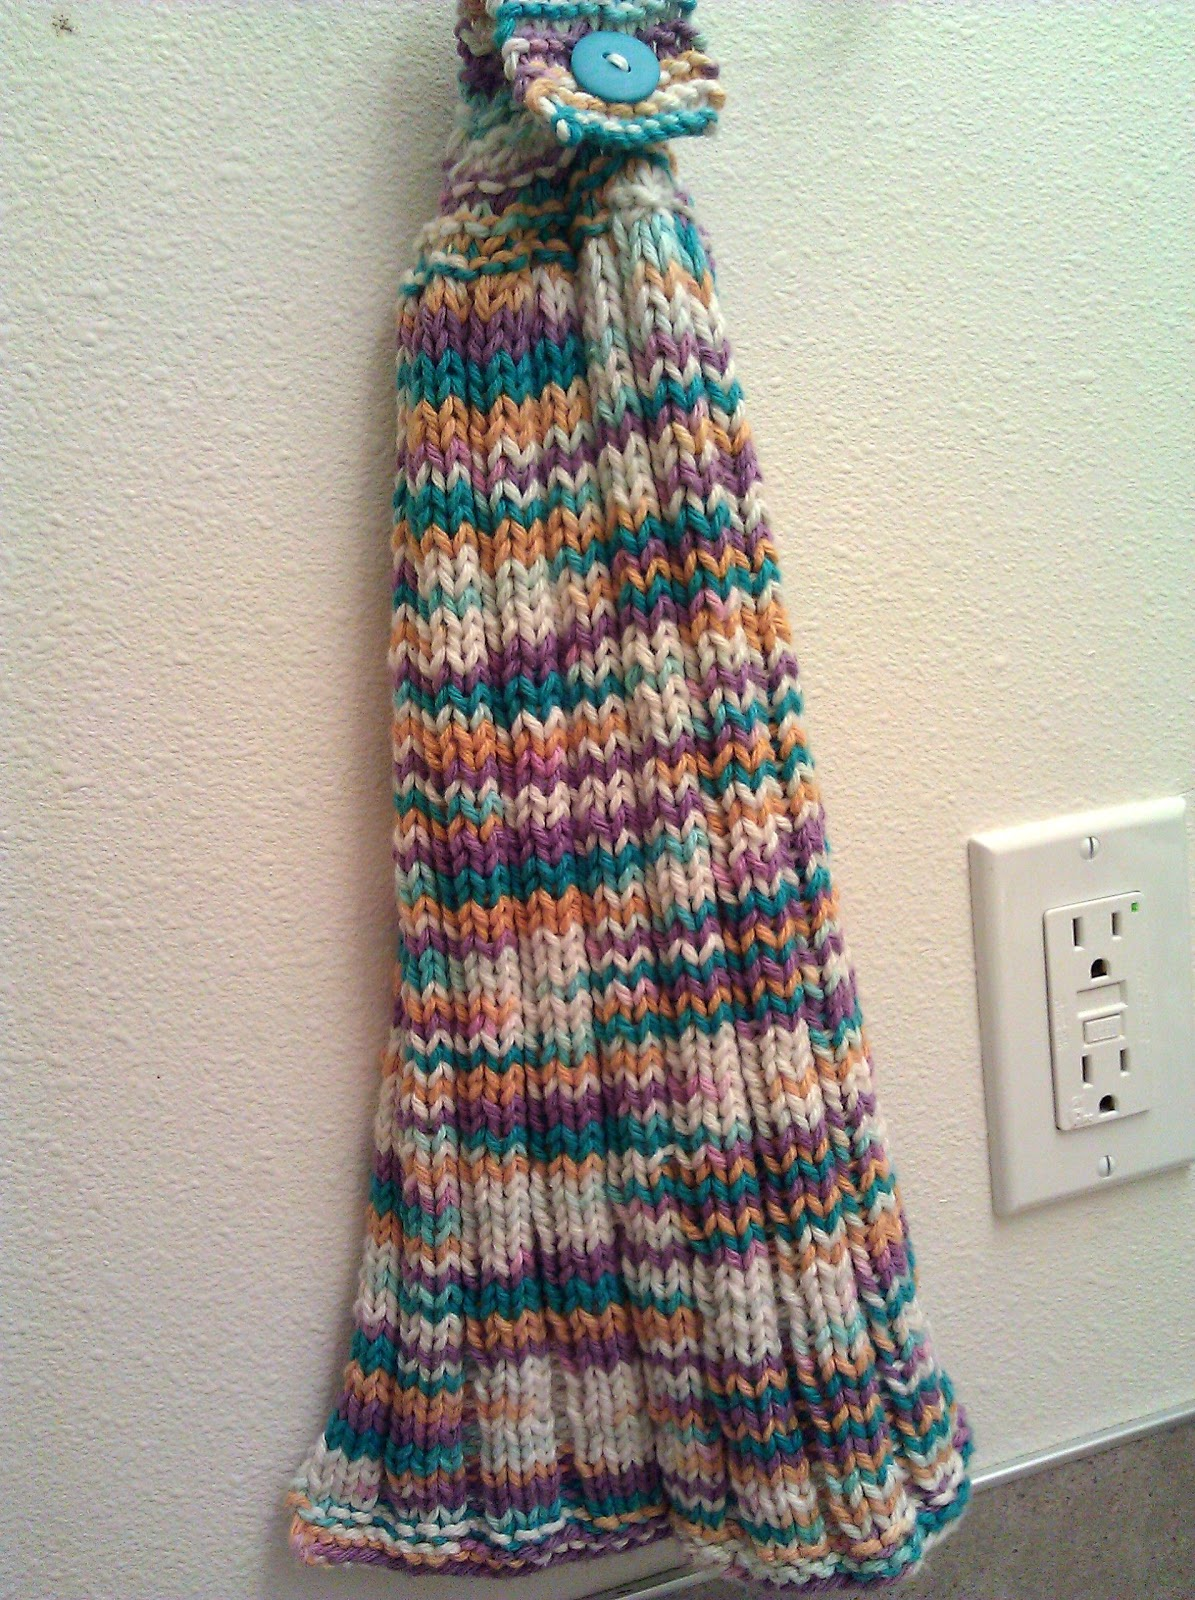 Knit Kitchen Towel Patterns : Dancing in the Rain: My First Published Knitting Pattern!